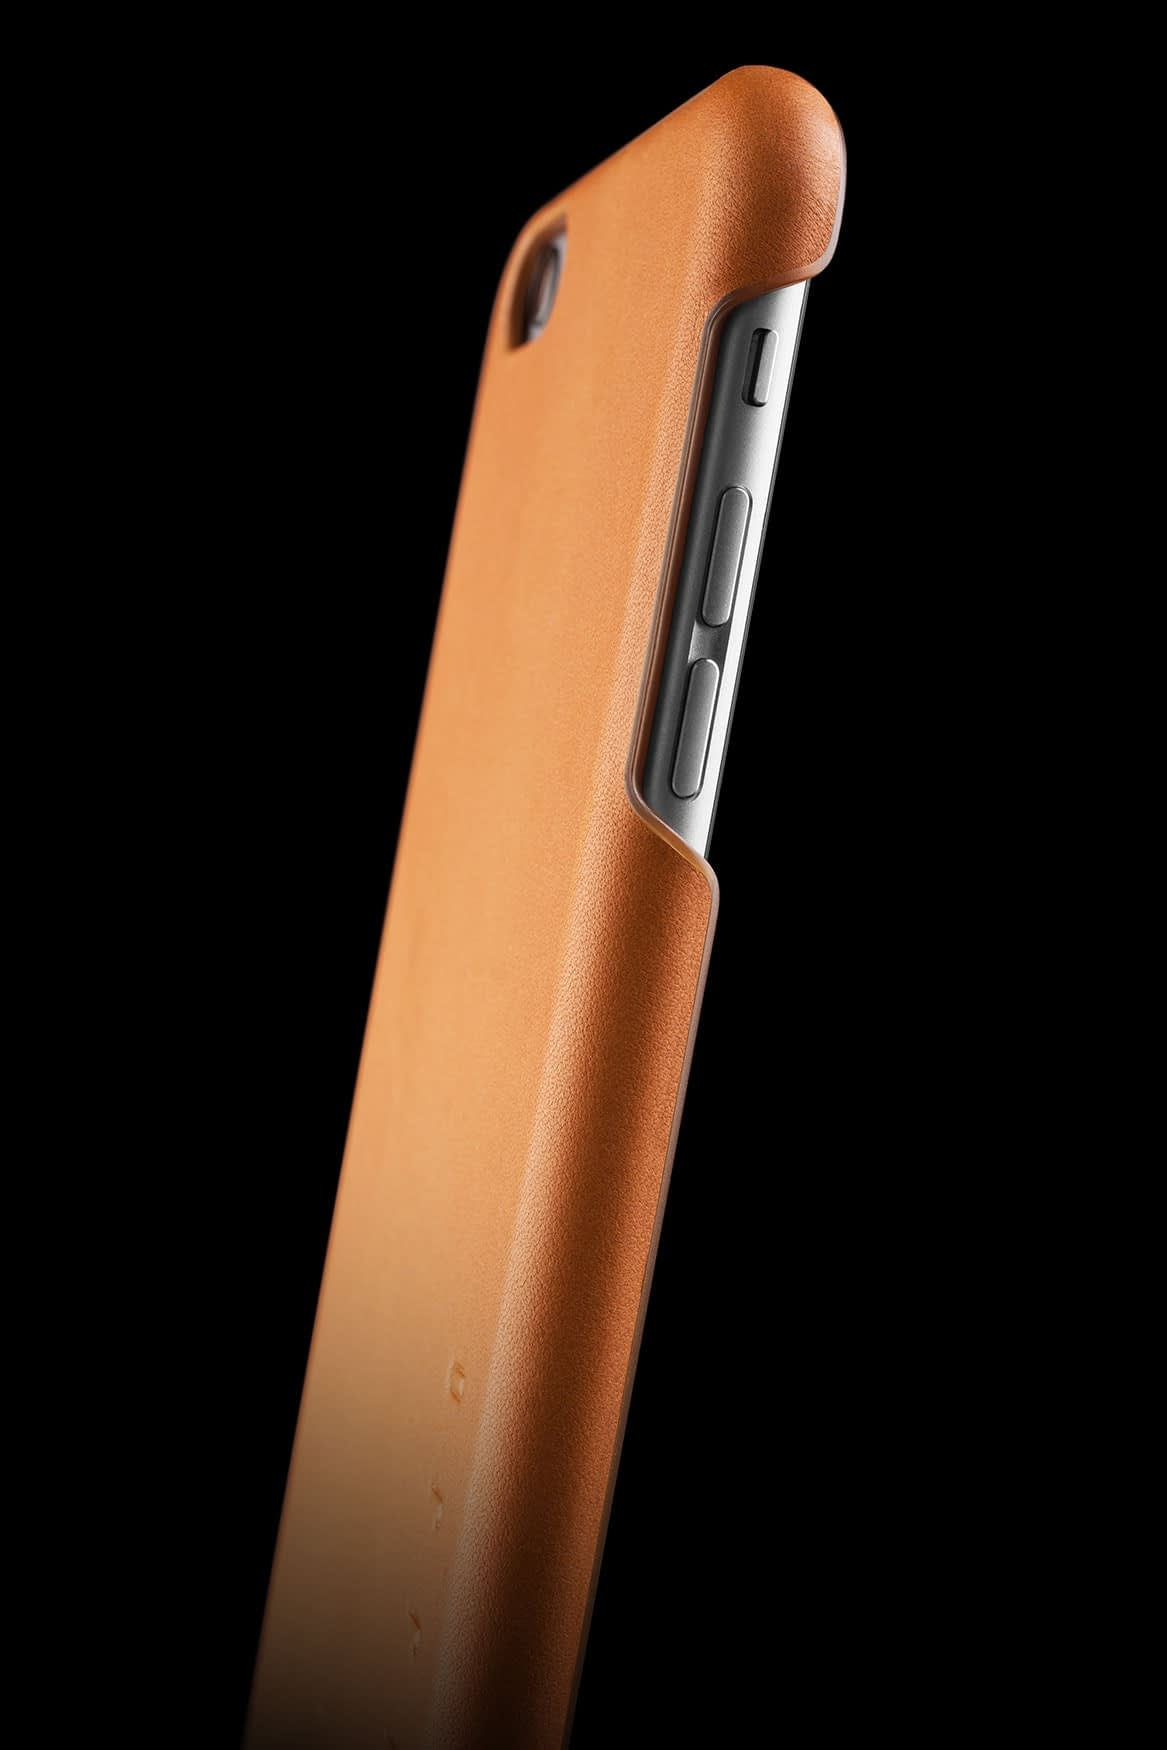 Leather Case for iPhone 6s Plus Tan 010